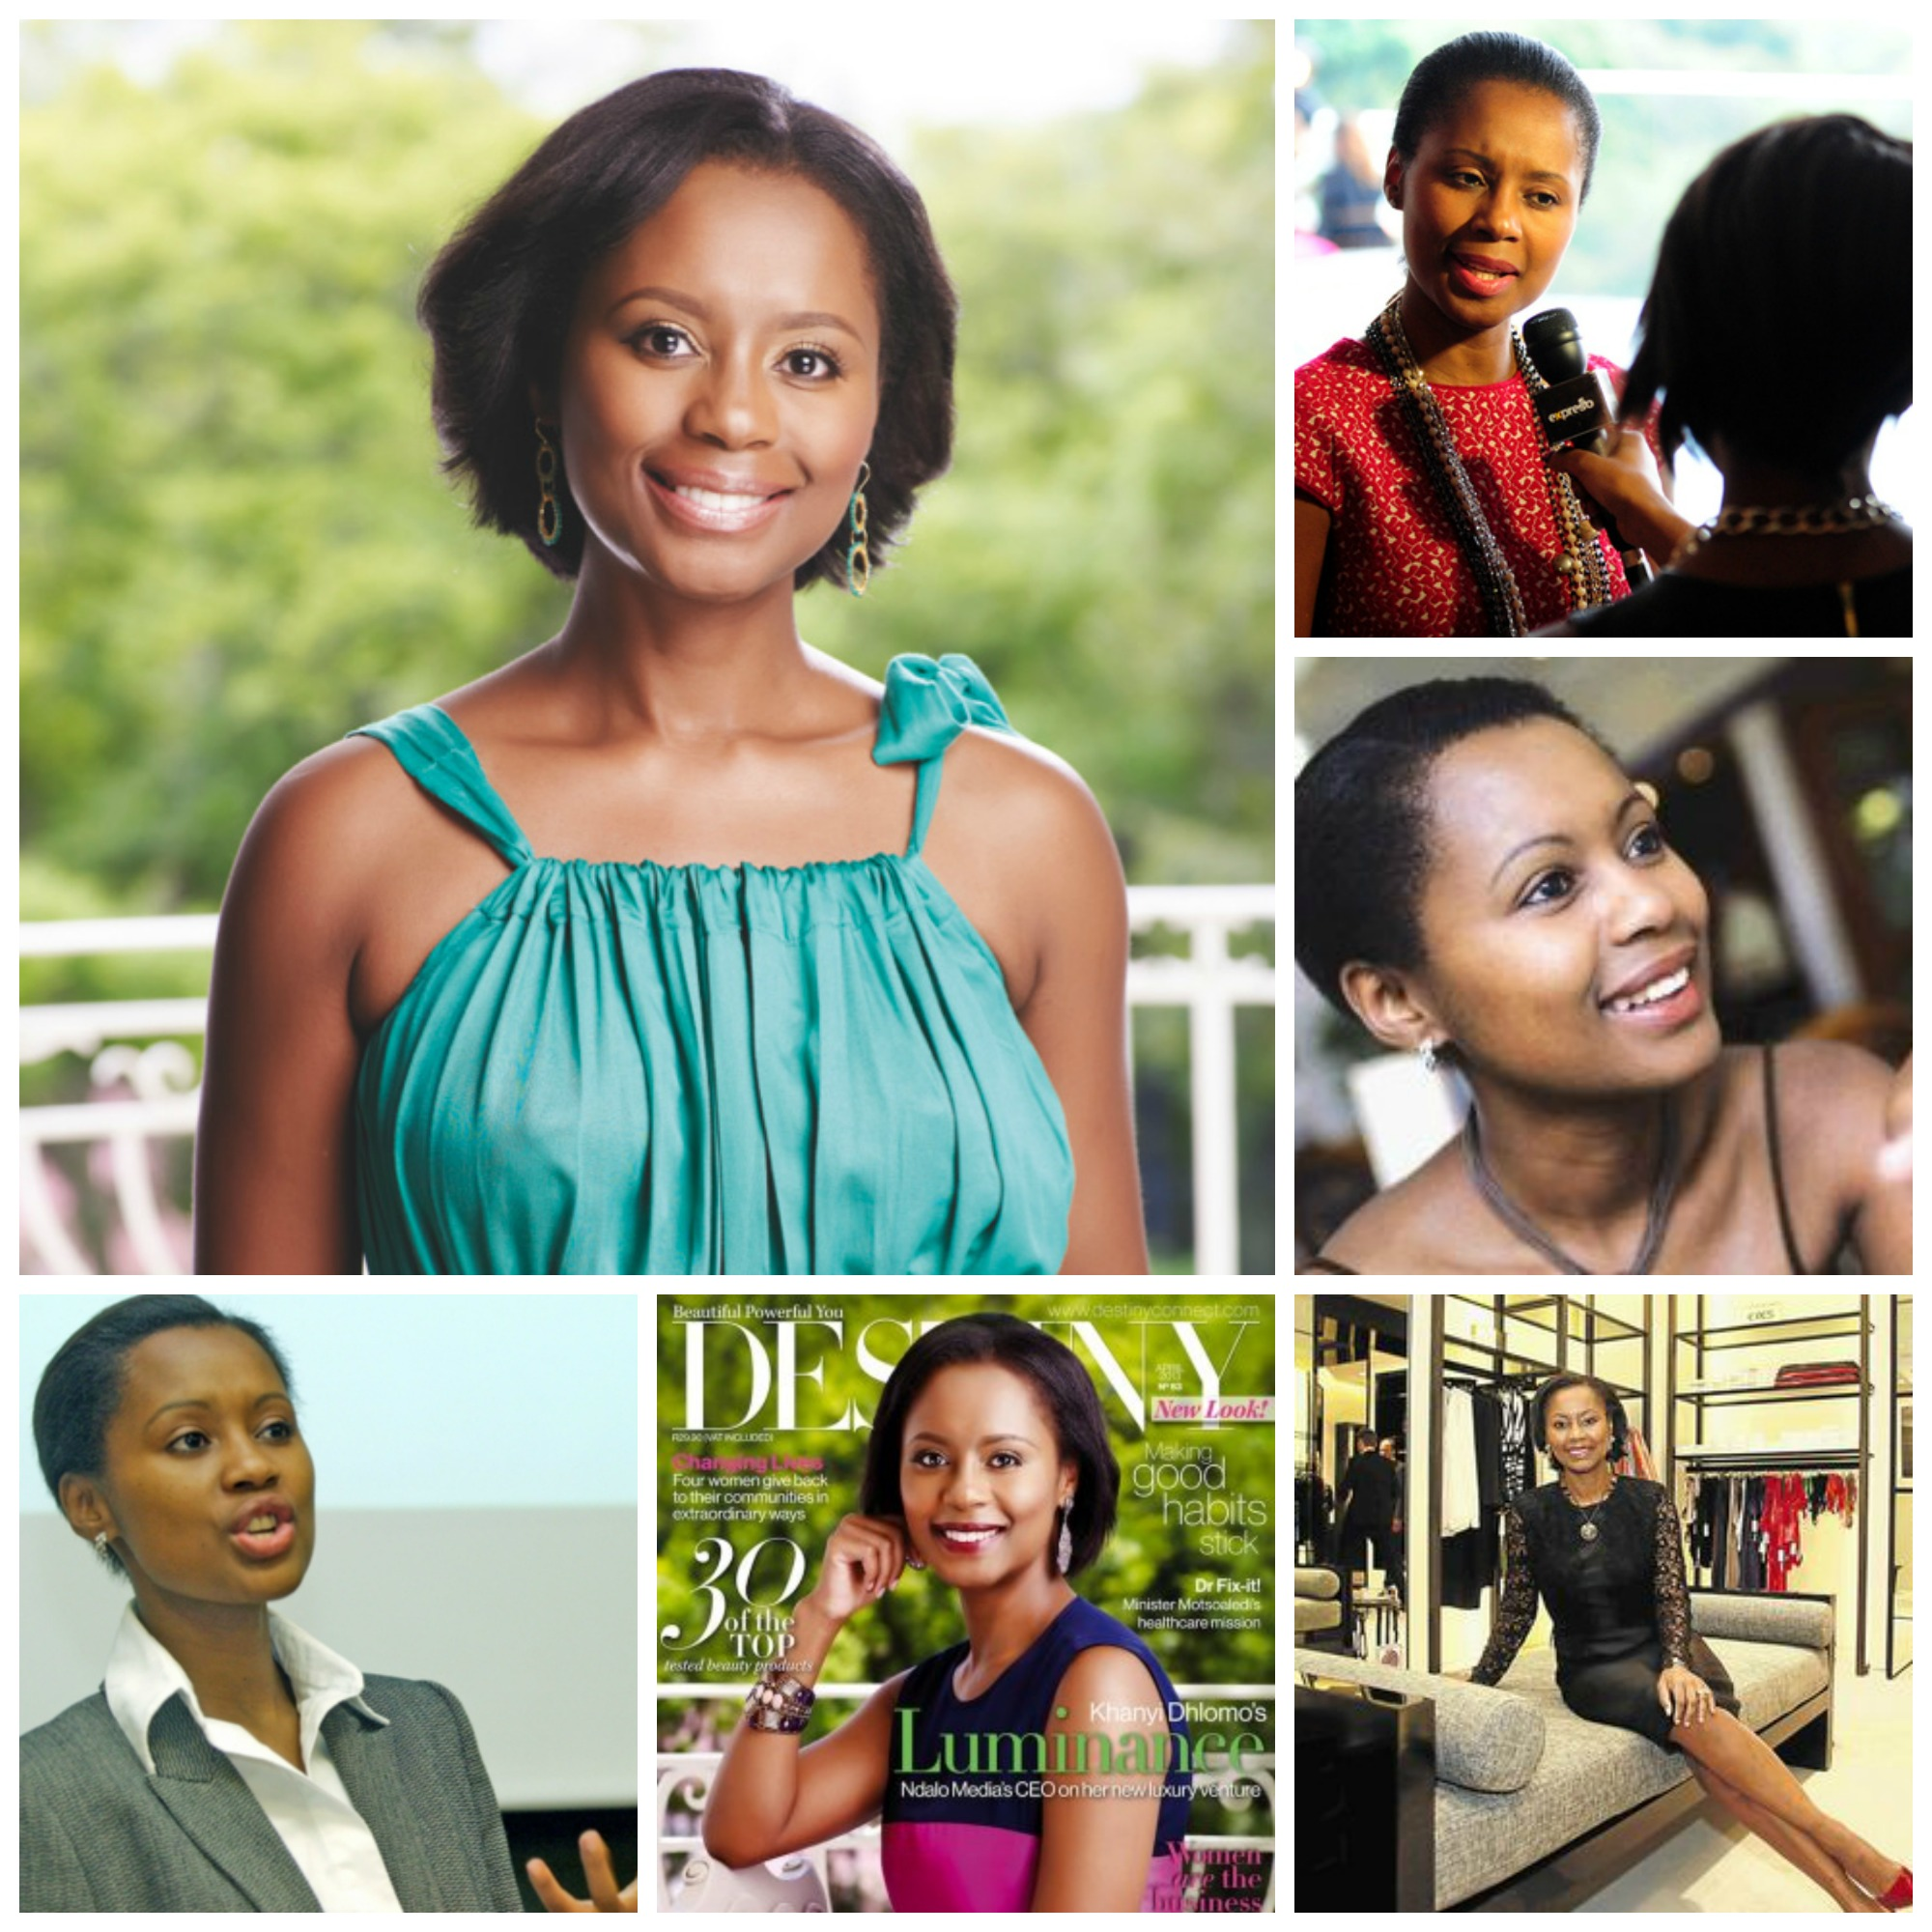 Khanyi Dhlomo - The startup story of a South African media